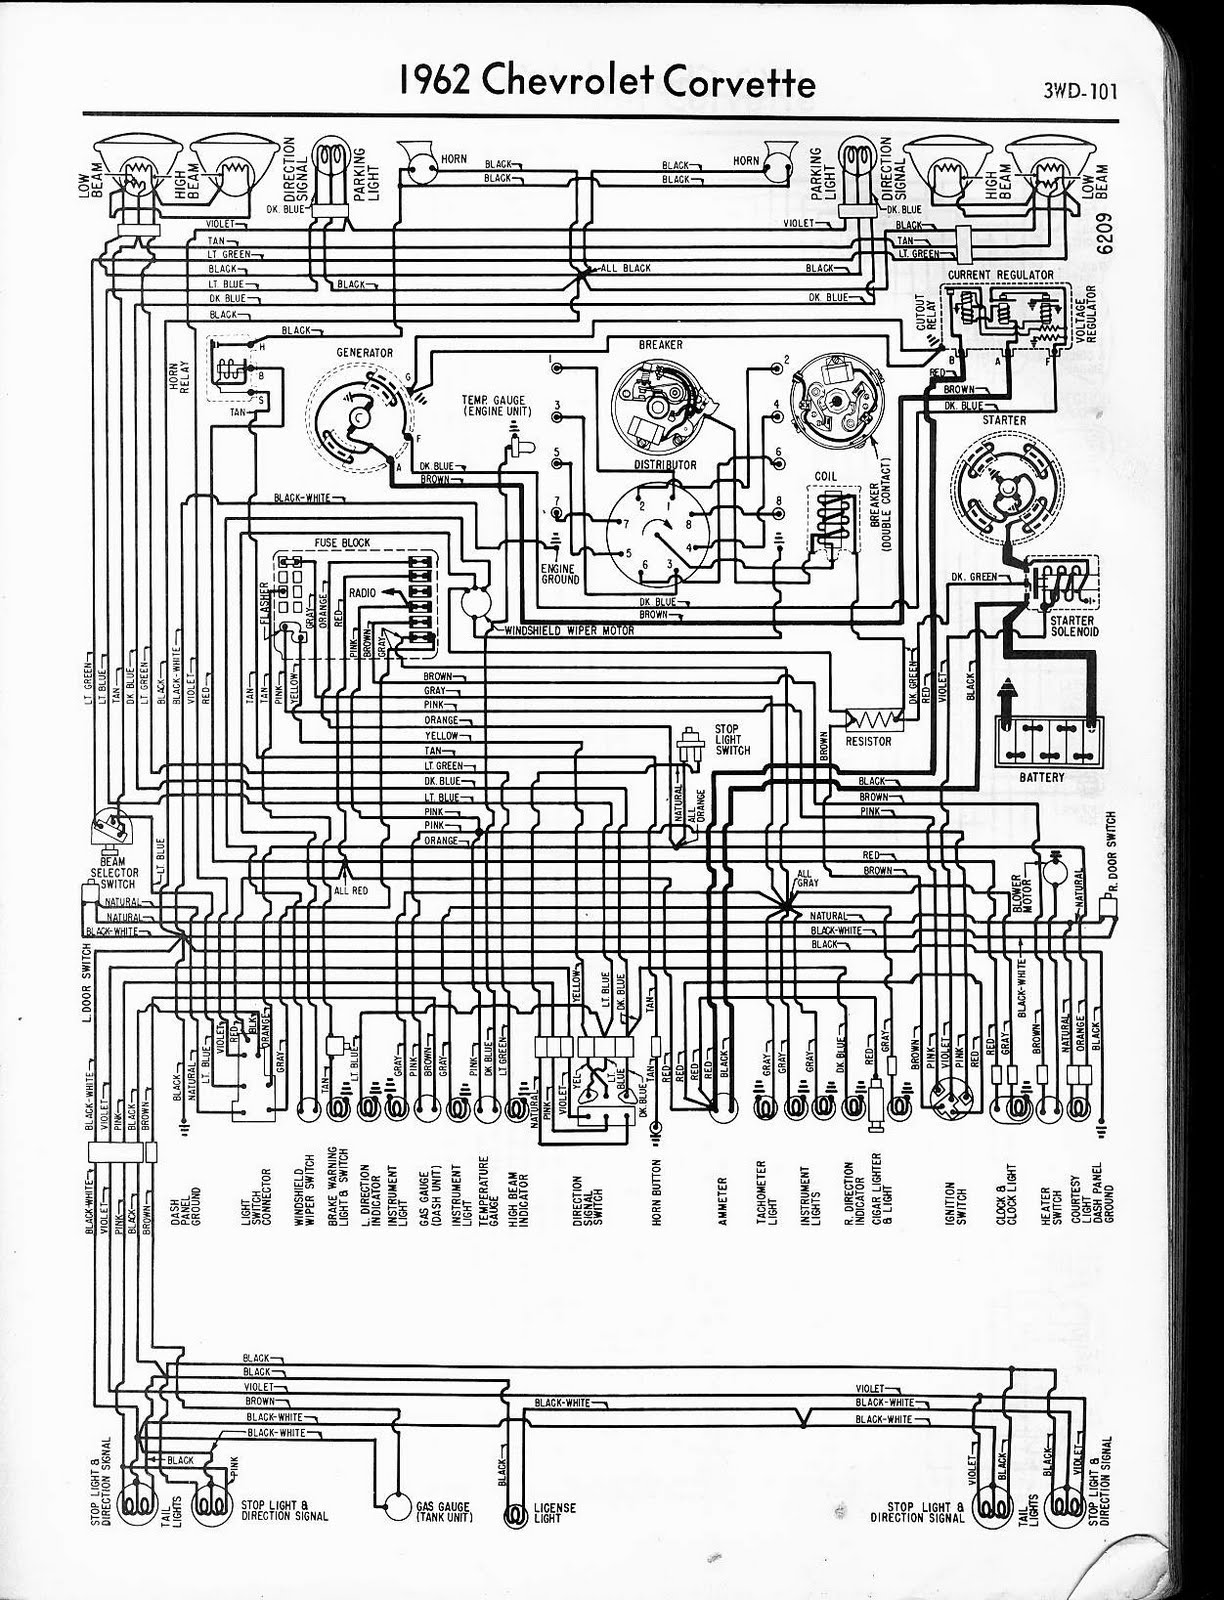 free auto wiring diagram: 1962 chevrolet corvette wiring ... 68 corvette dash wiring diagram free download